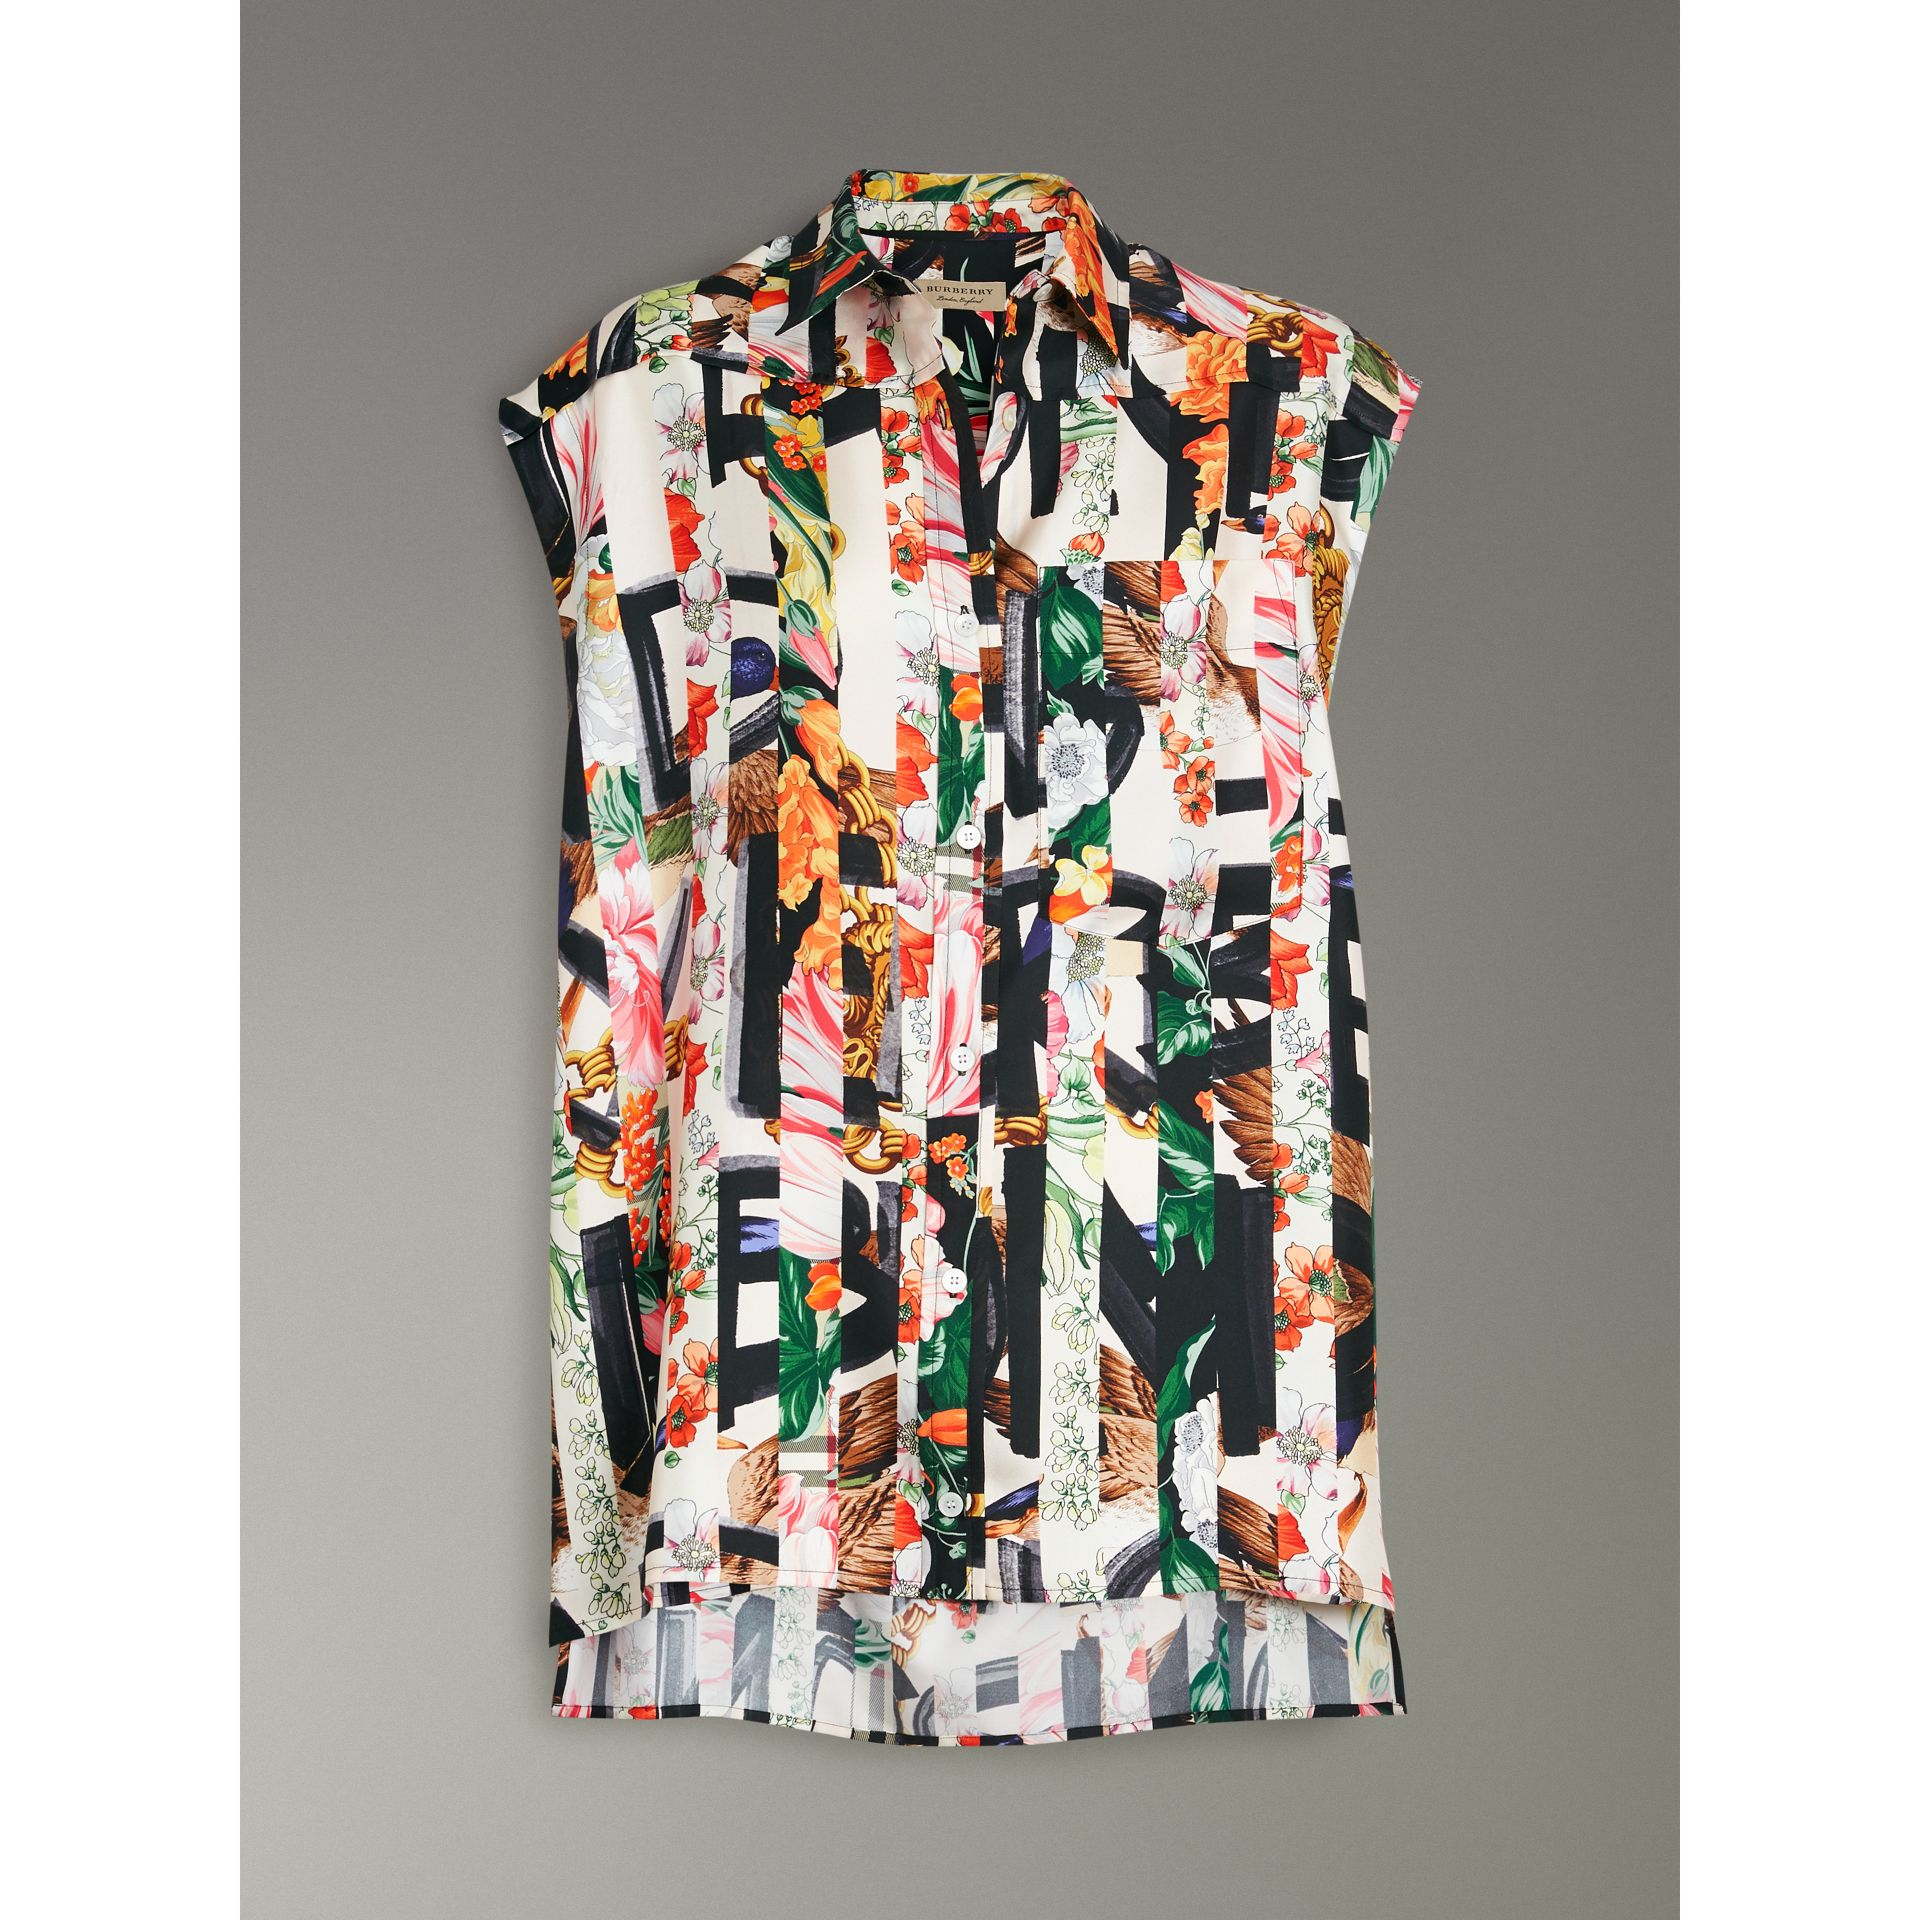 Archive Scarf Print Silk Sleeveless Shirt in Multicolour - Women | Burberry United Kingdom - gallery image 3